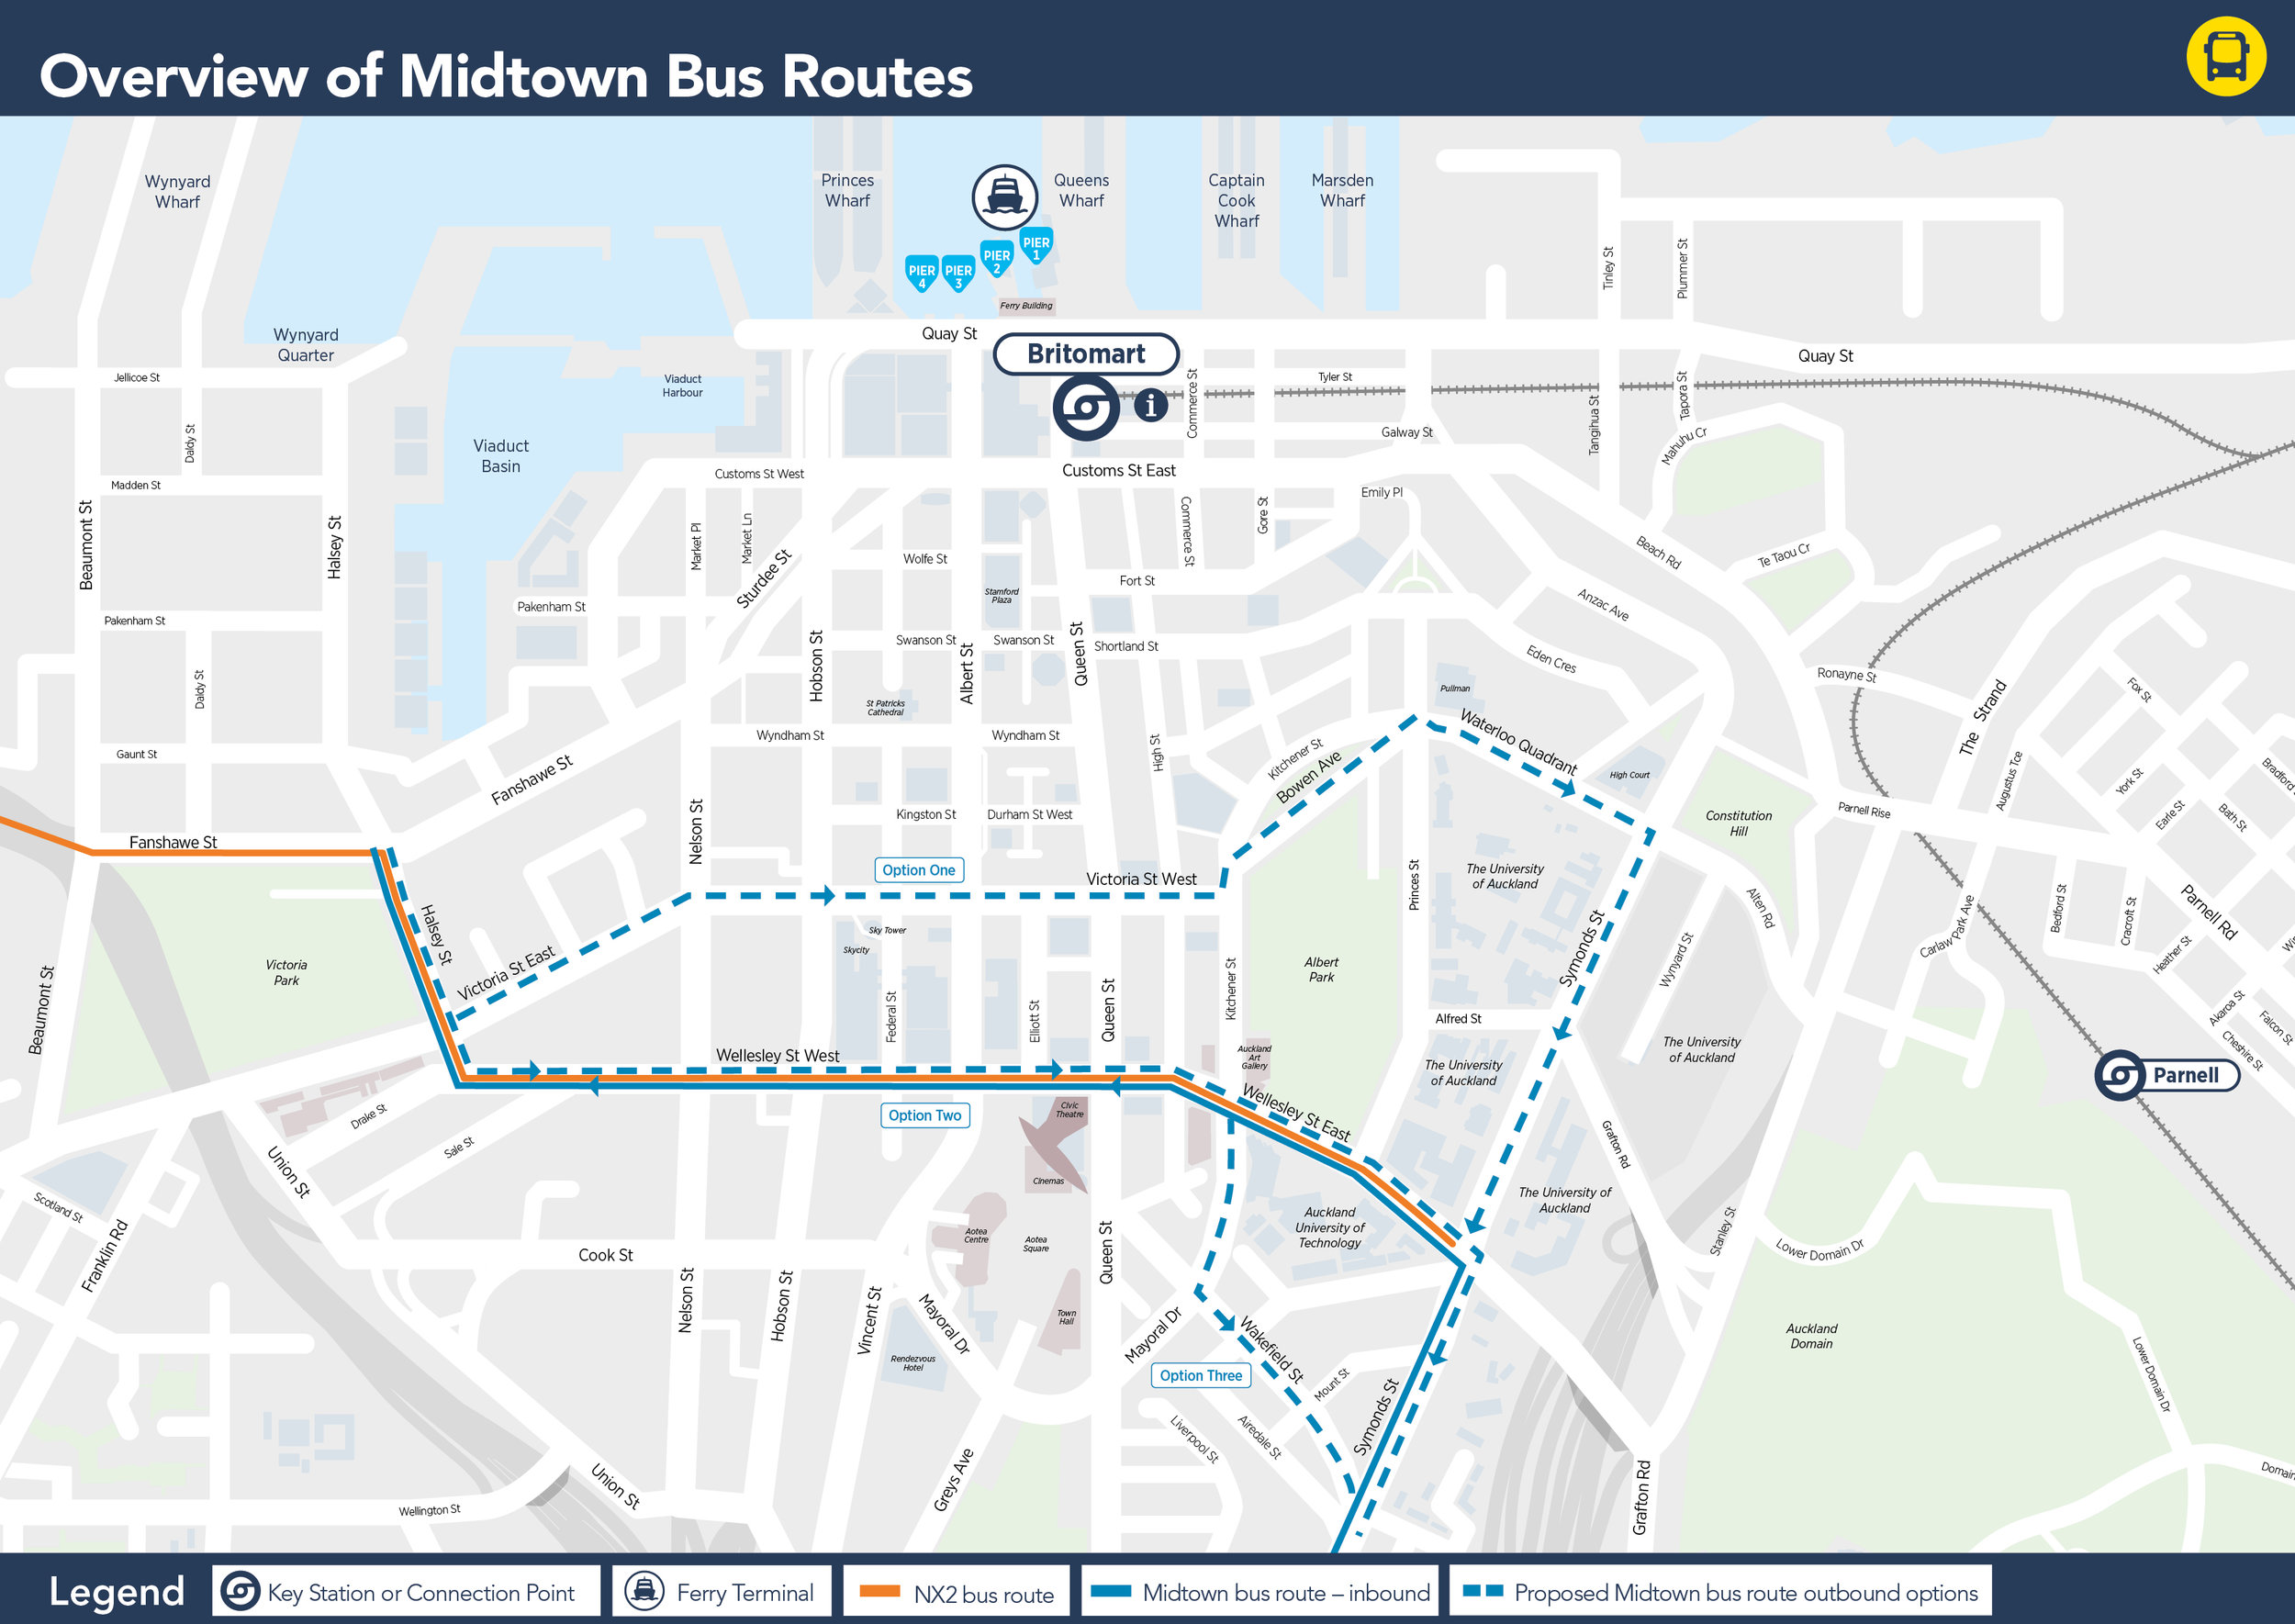 Submission (23.04.17) - ATs options for the Midtown bus route